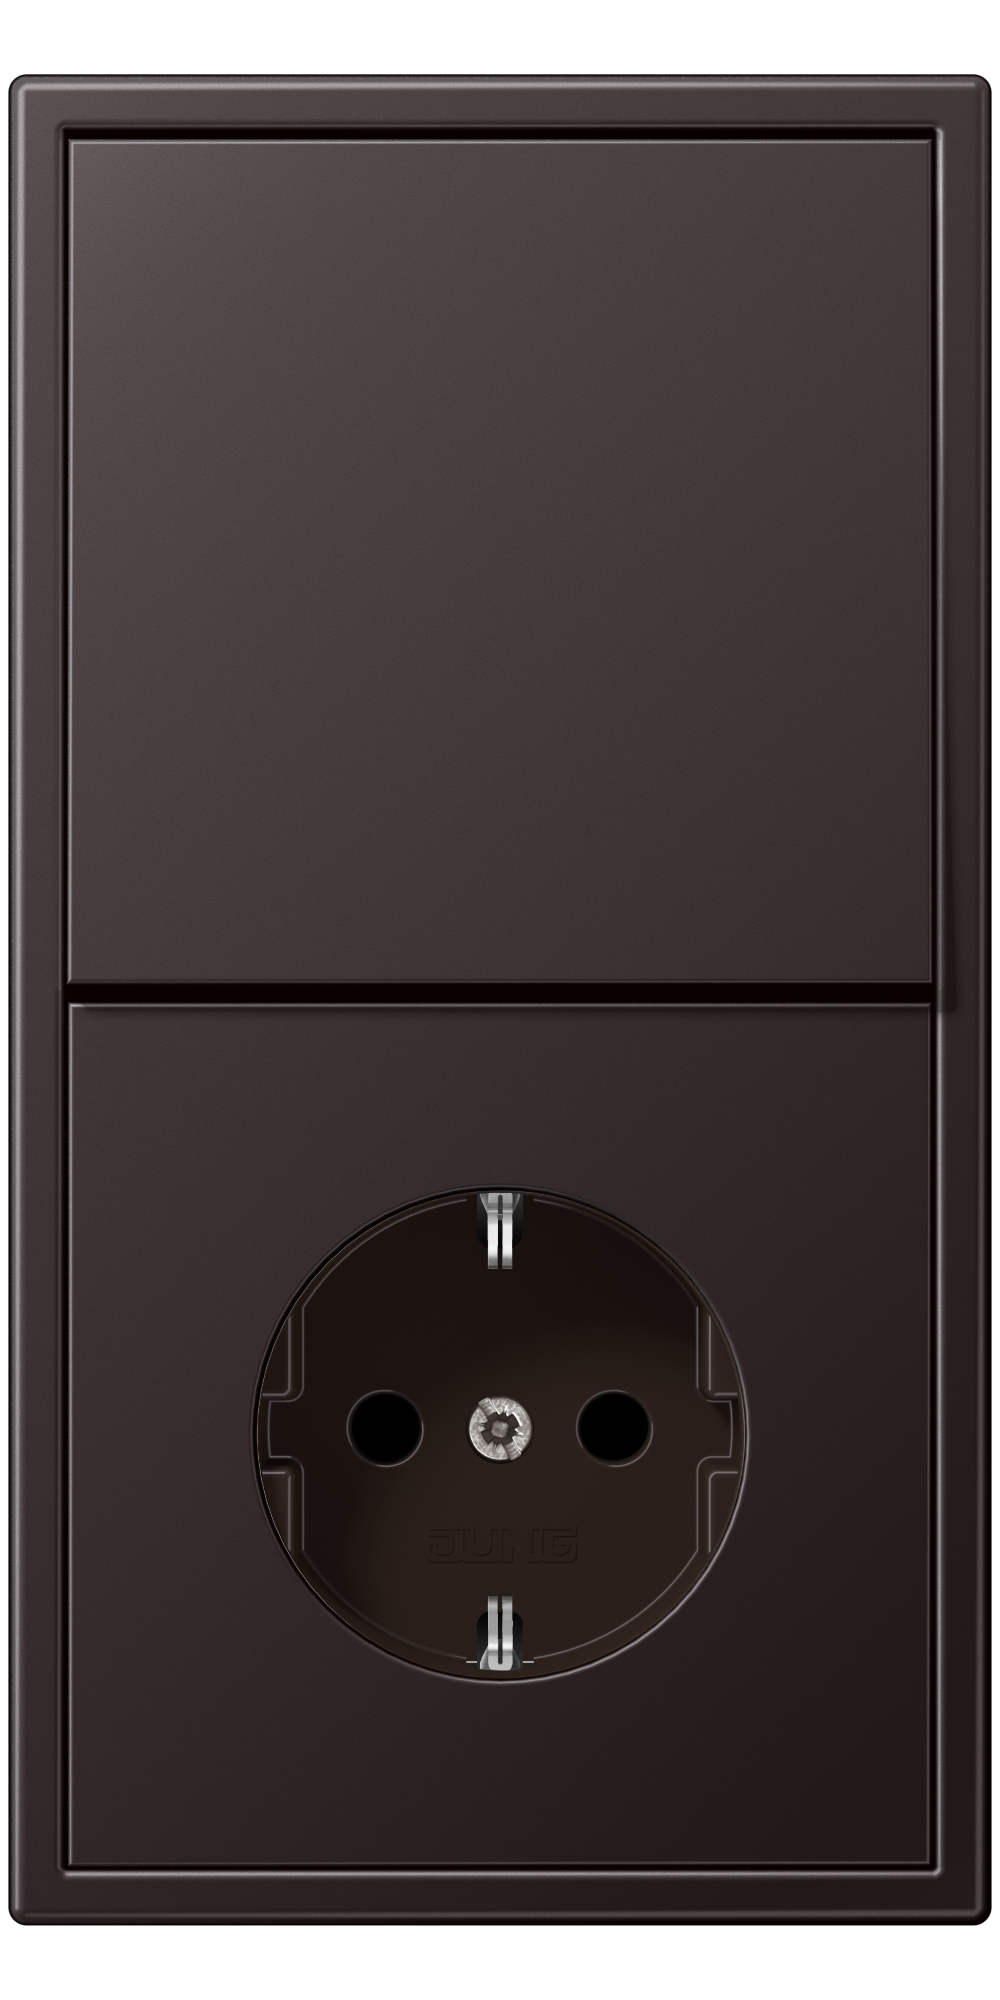 JUNG_LS990_aluminium-dark_switch-socket